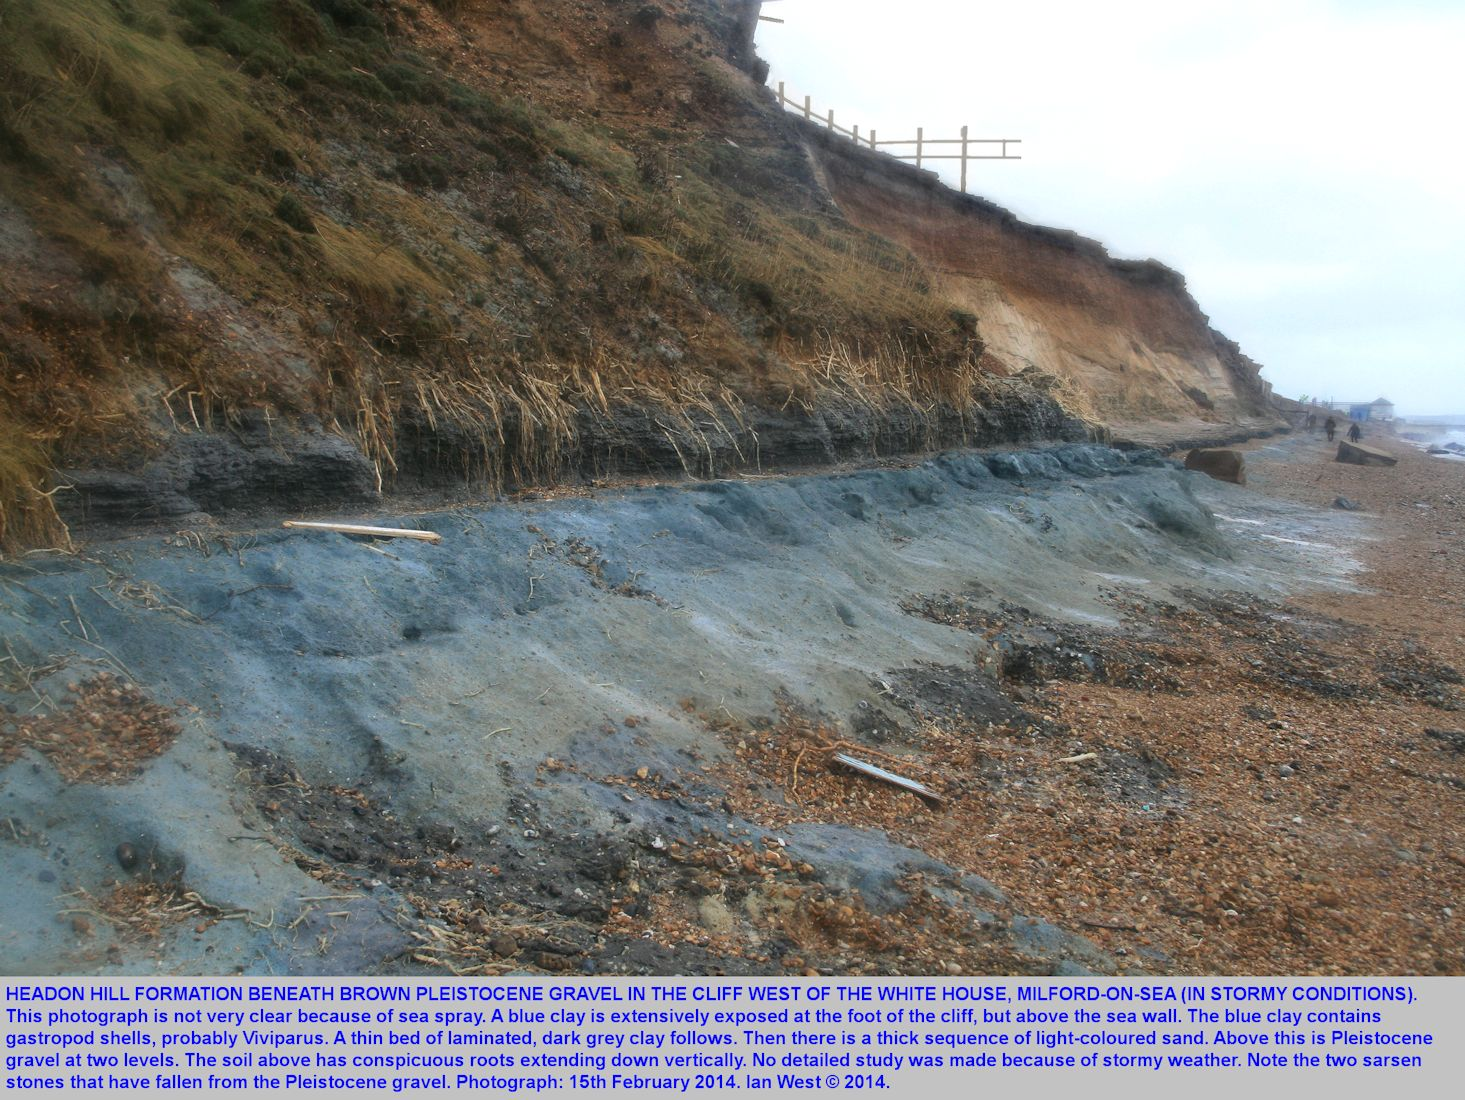 Good exposure of the Headon Hill Formation, after the storm of 14-15th February 2014, west of the White House and near Paddy's Gap, Milford-on-Sea, Hampshire